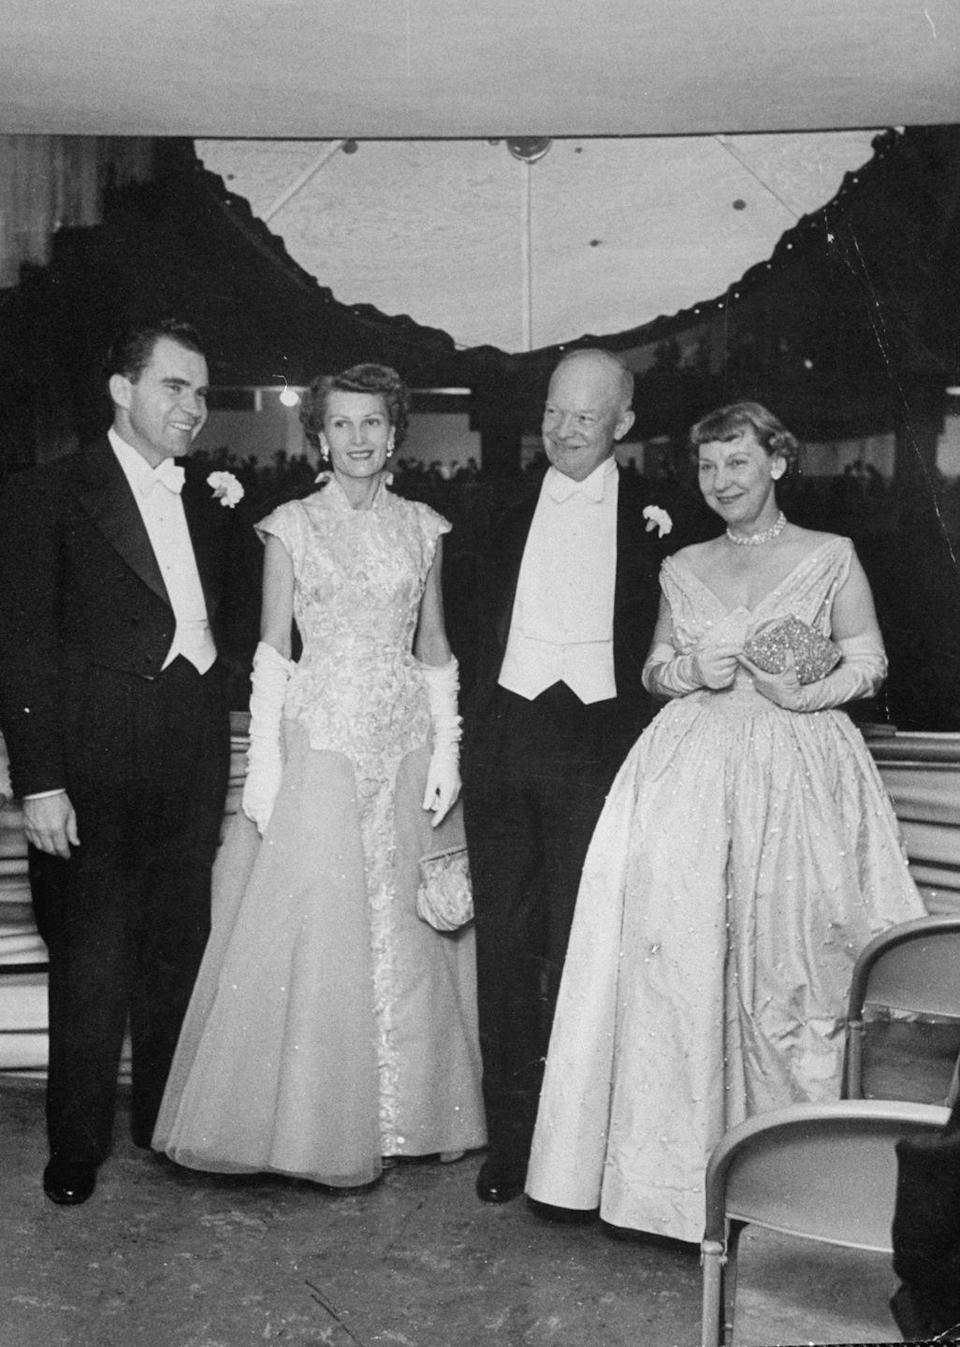 """<p>At his first inauguration in 1953, Dwight Eisenhower is joined by his wife, Mamie Eisenhower, Vice President Nixon, and his wife, Patricia Nixon. There were <a href=""""https://www.eisenhowerlibrary.gov/sites/default/files/research/online-documents/inauguration-1957/inaugural-ball-program.pdf"""" rel=""""nofollow noopener"""" target=""""_blank"""" data-ylk=""""slk:two inaugural balls held in honor of Eisenhower"""" class=""""link rapid-noclick-resp"""">two inaugural balls held in honor of Eisenhower</a> that evening, one in the Armory and the other in the McDonough Gymnasium at Georgetown University. </p>"""